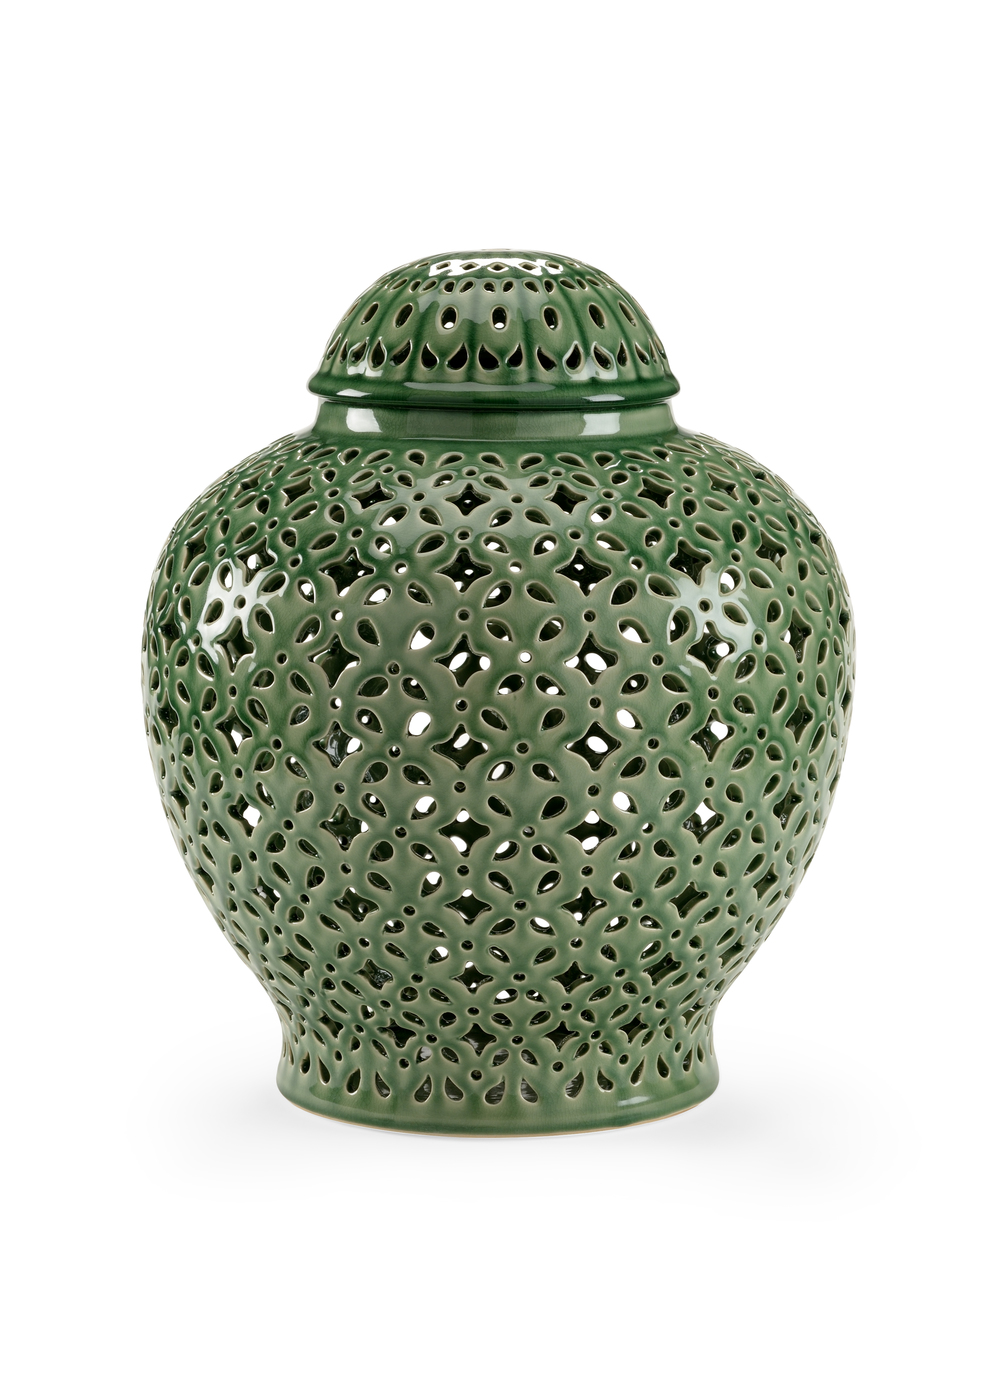 Chelsea House - Pierced Covered Jar in Green